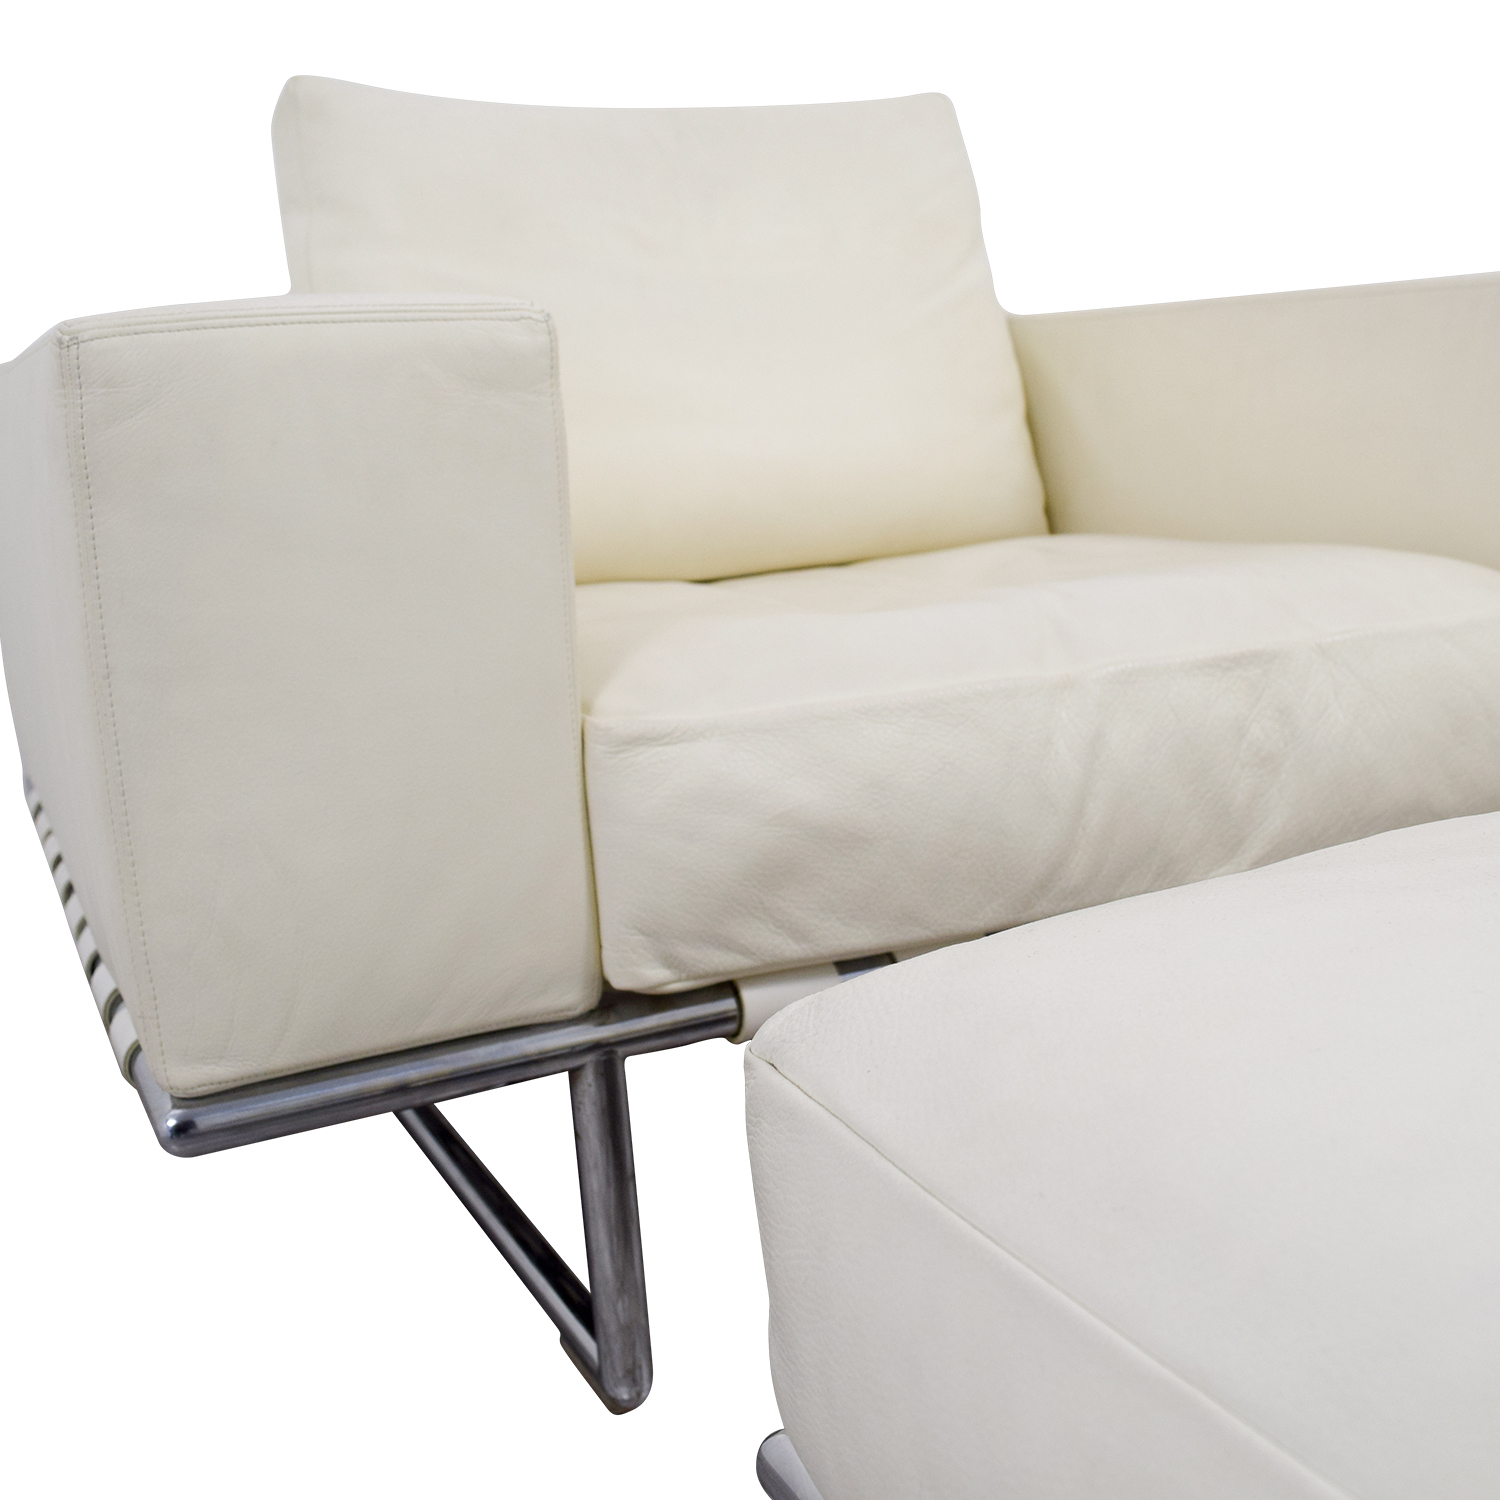 ... Moura Starr Moura Starr Italian White Leather Chair With Ottoman ...